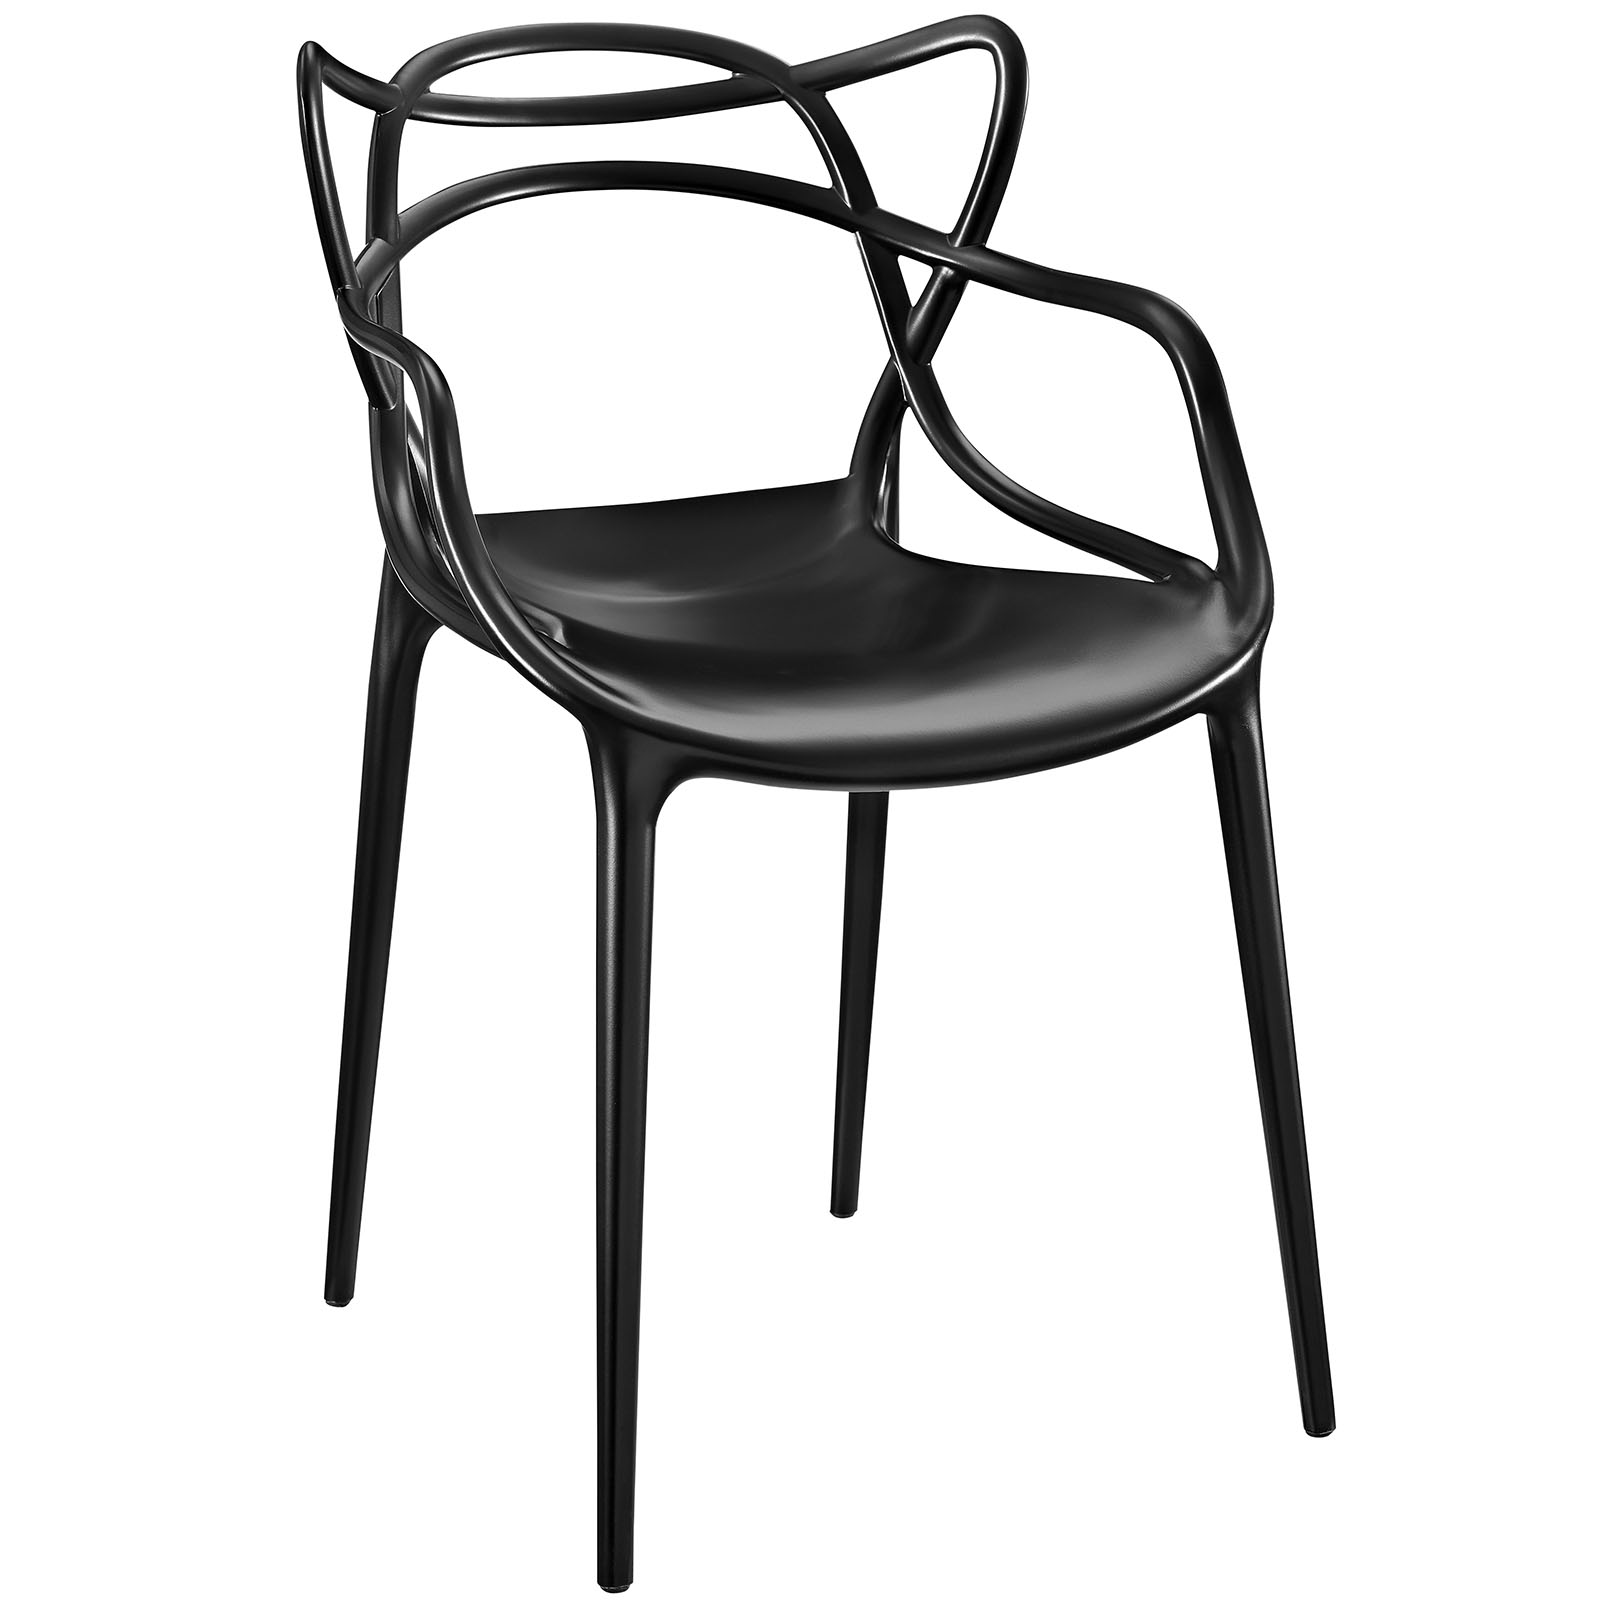 Modern Contemporary Dining Armchair (Indoor and Outdoor), Black, Plastic by